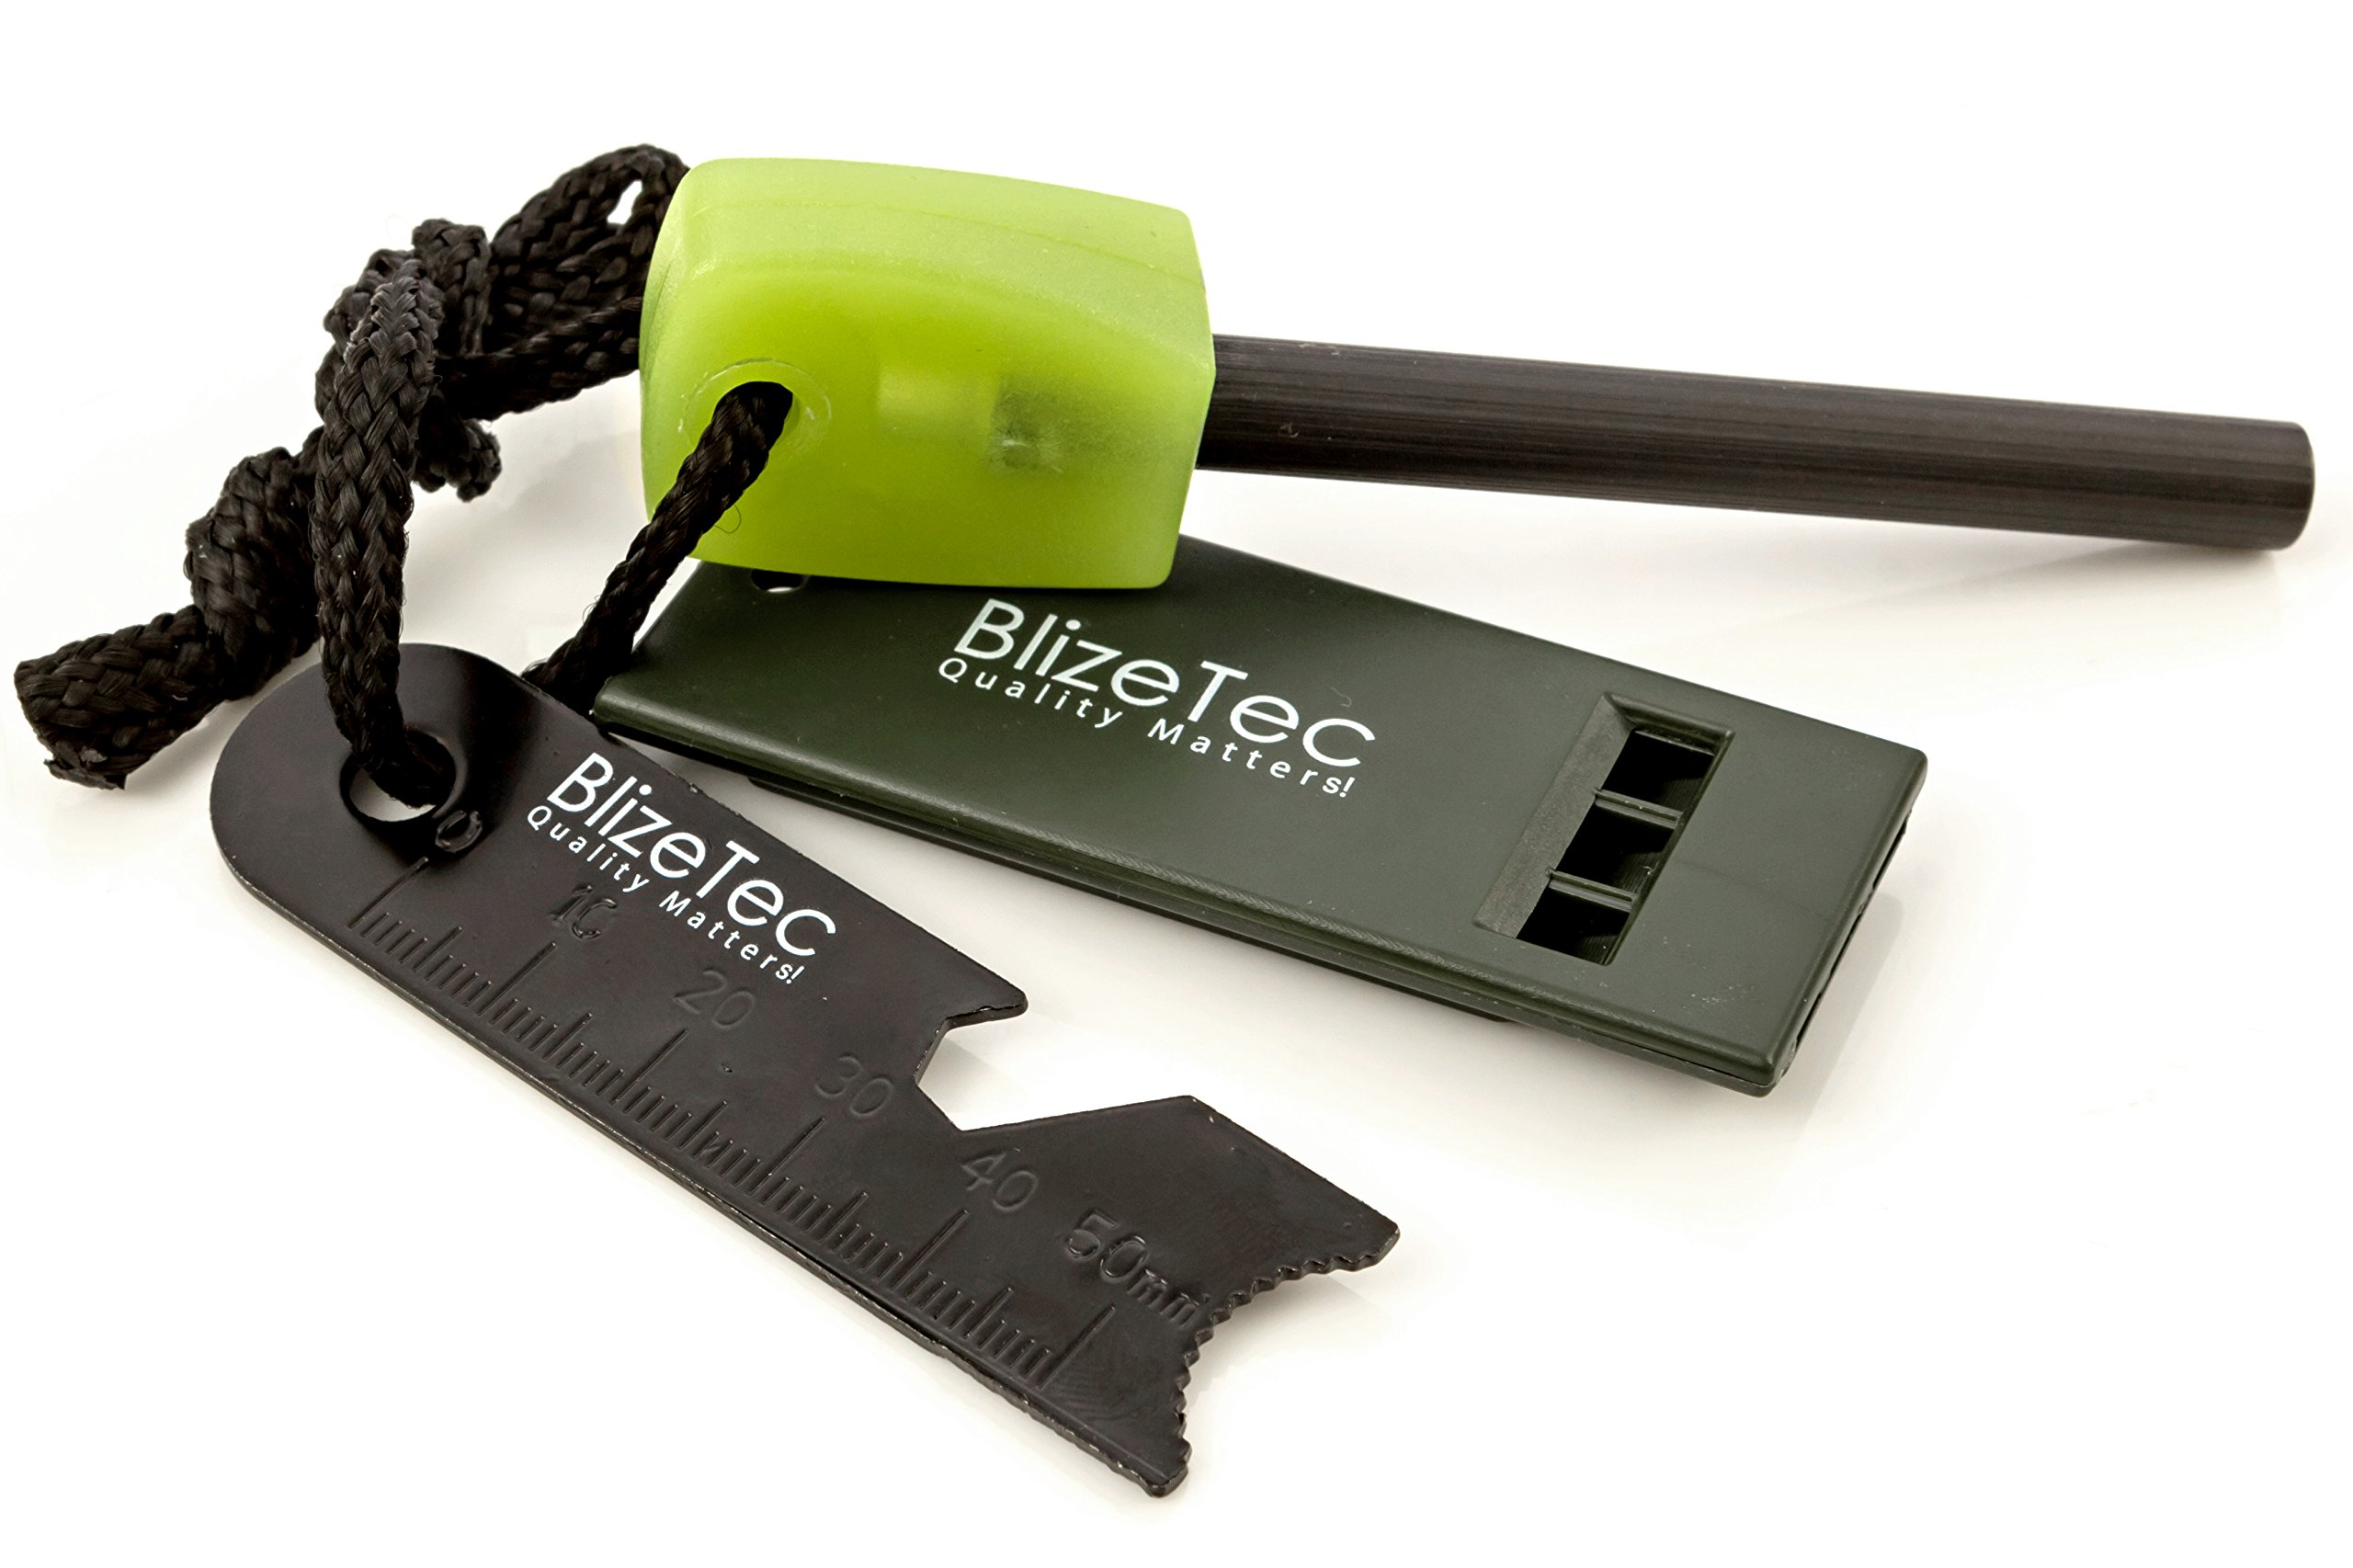 BlizeTec Fire Starter: Best 6-in-1 Magnesium Emergency Fire Starter With Luminous Green Handle, Mini Ruler, Bottle Opener, Serrated Edge and Rescue Whistle; Last Up To 12,000 Strike